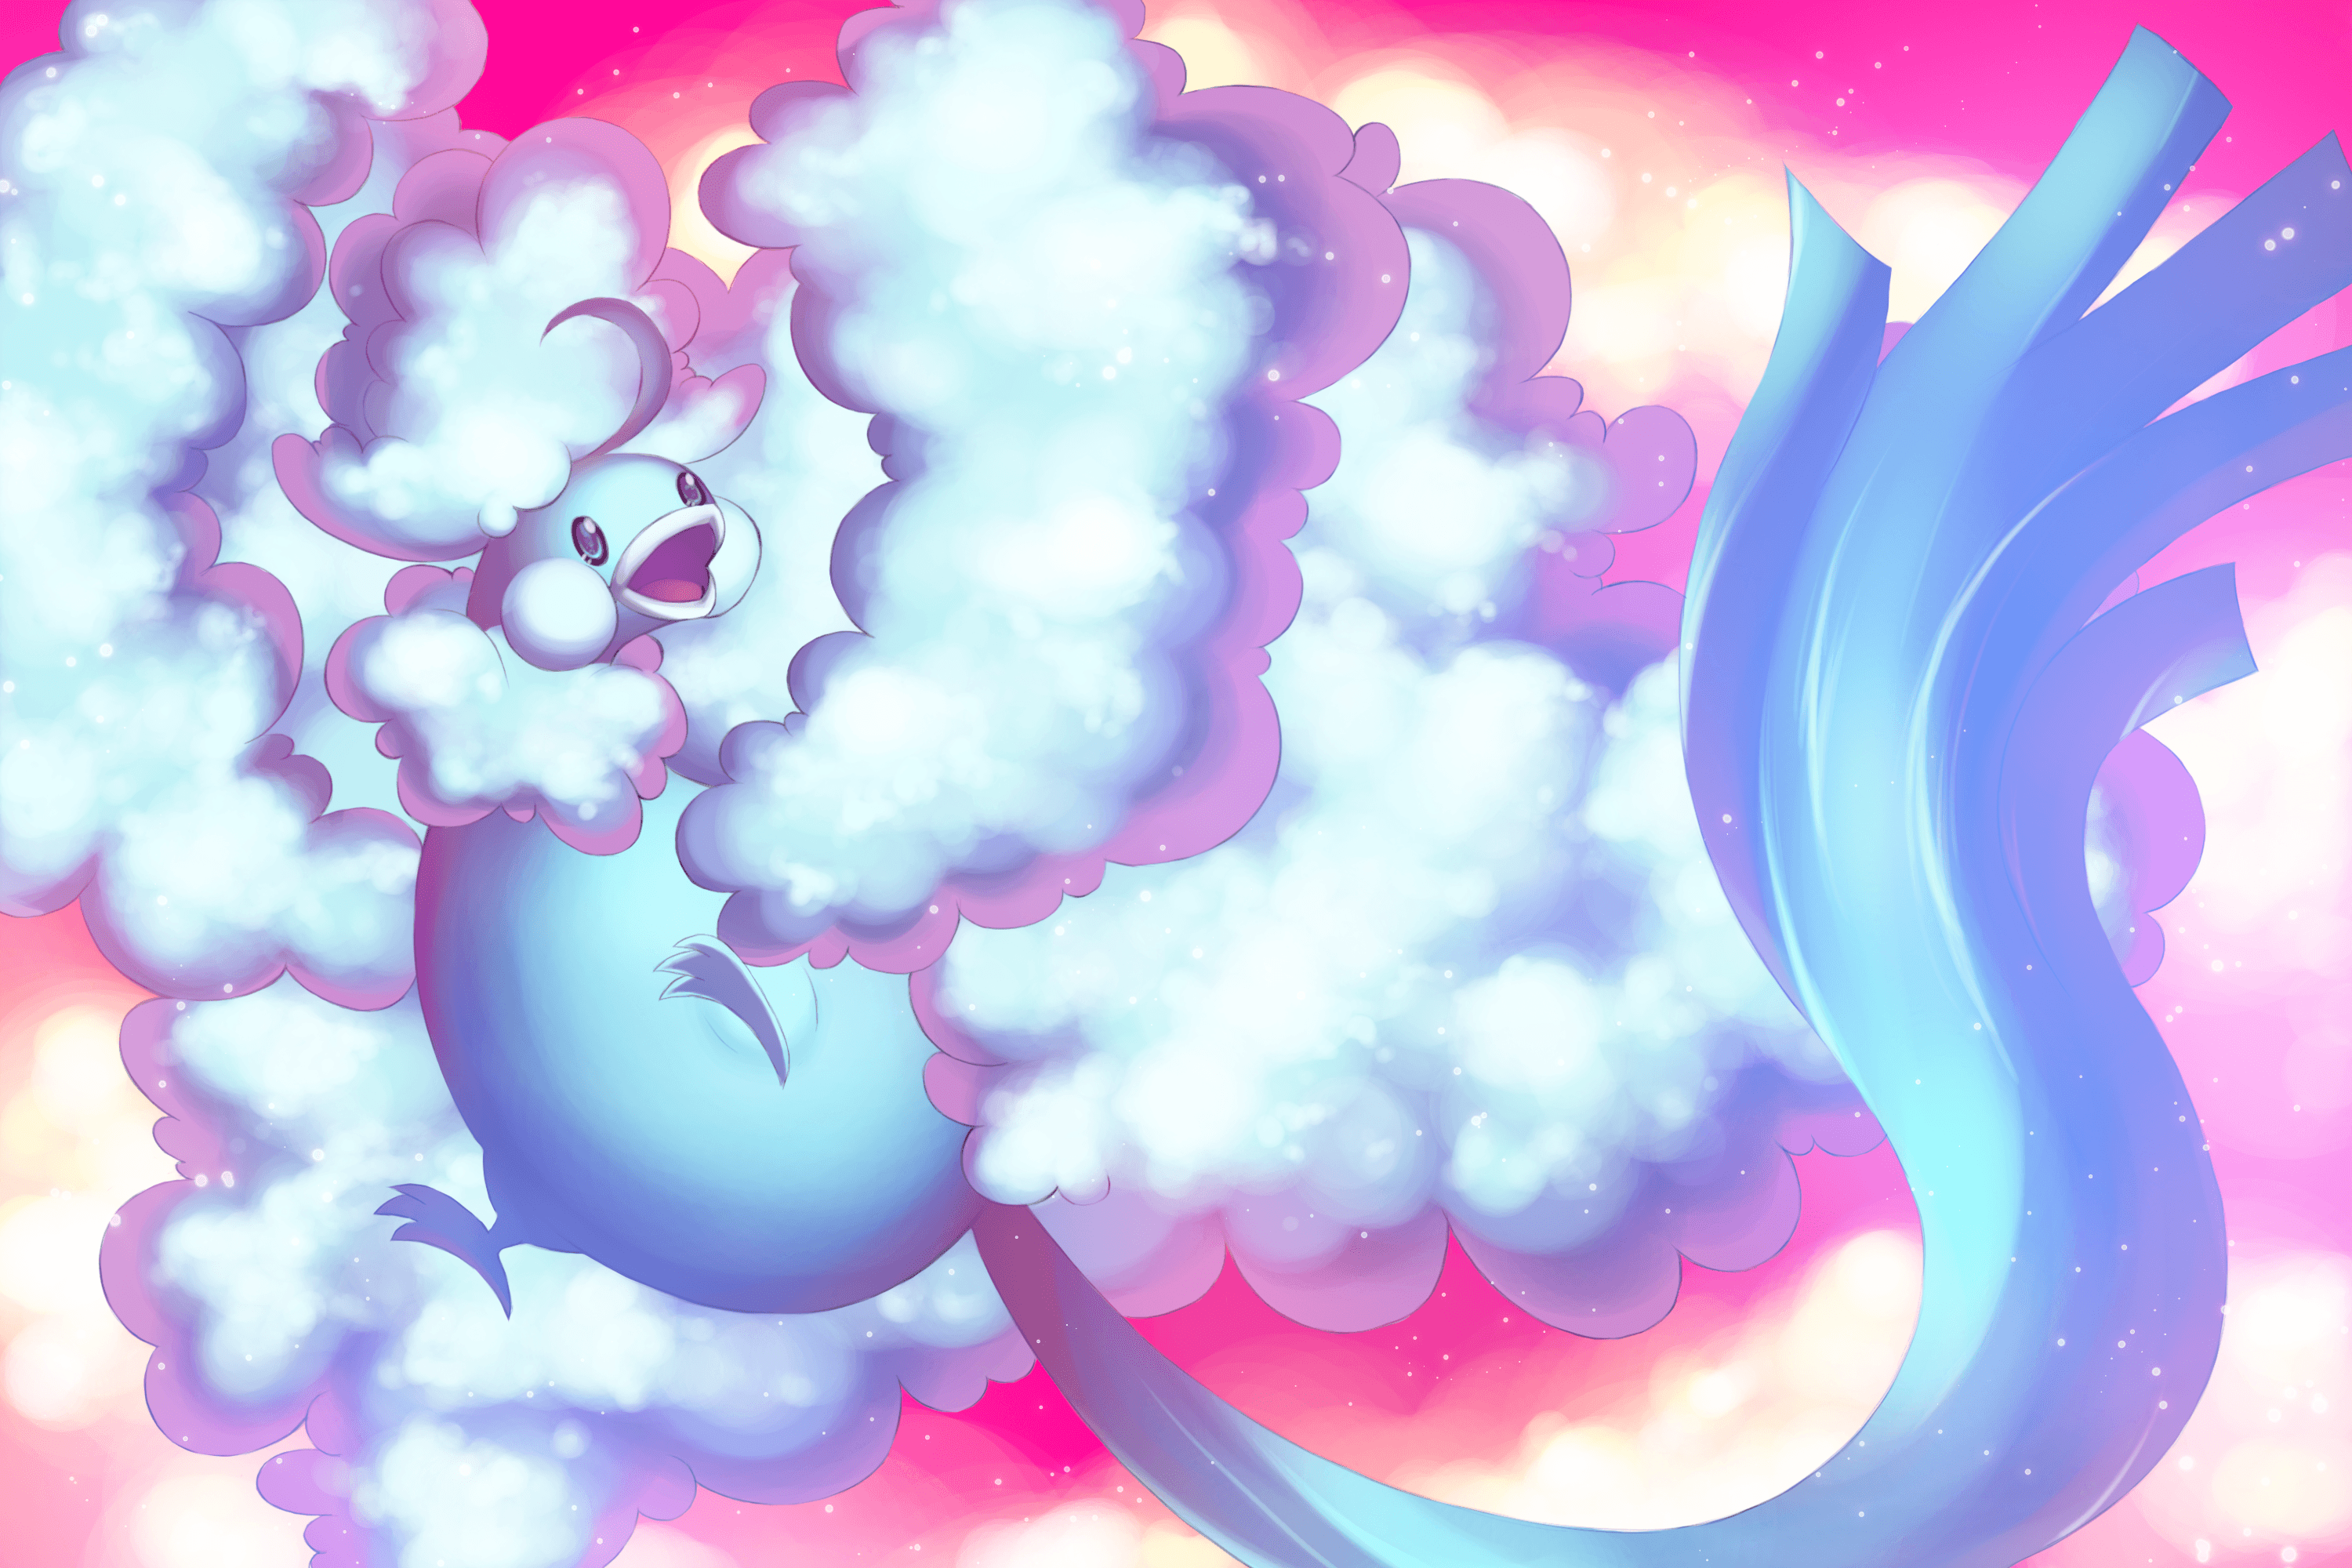 10 Altaria (Pokémon) HD Wallpapers | Background Images - Wallpaper Abyss